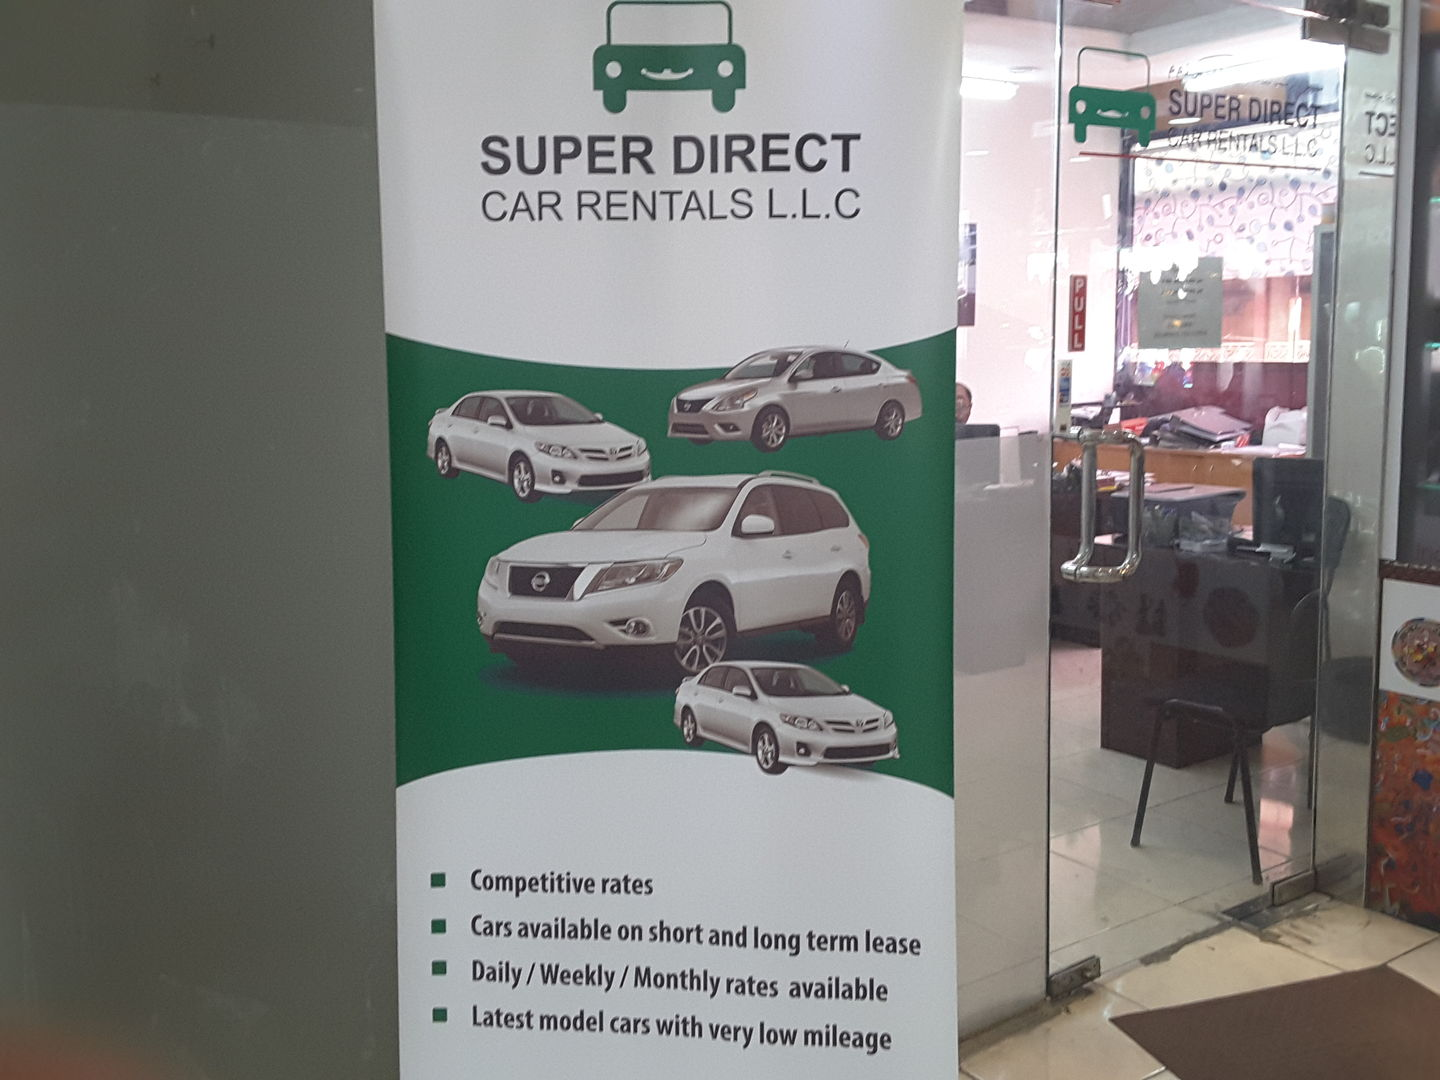 HiDubai-business-super-direct-car-rentals-transport-vehicle-services-car-rental-services-al-raffa-al-raffa-dubai-2